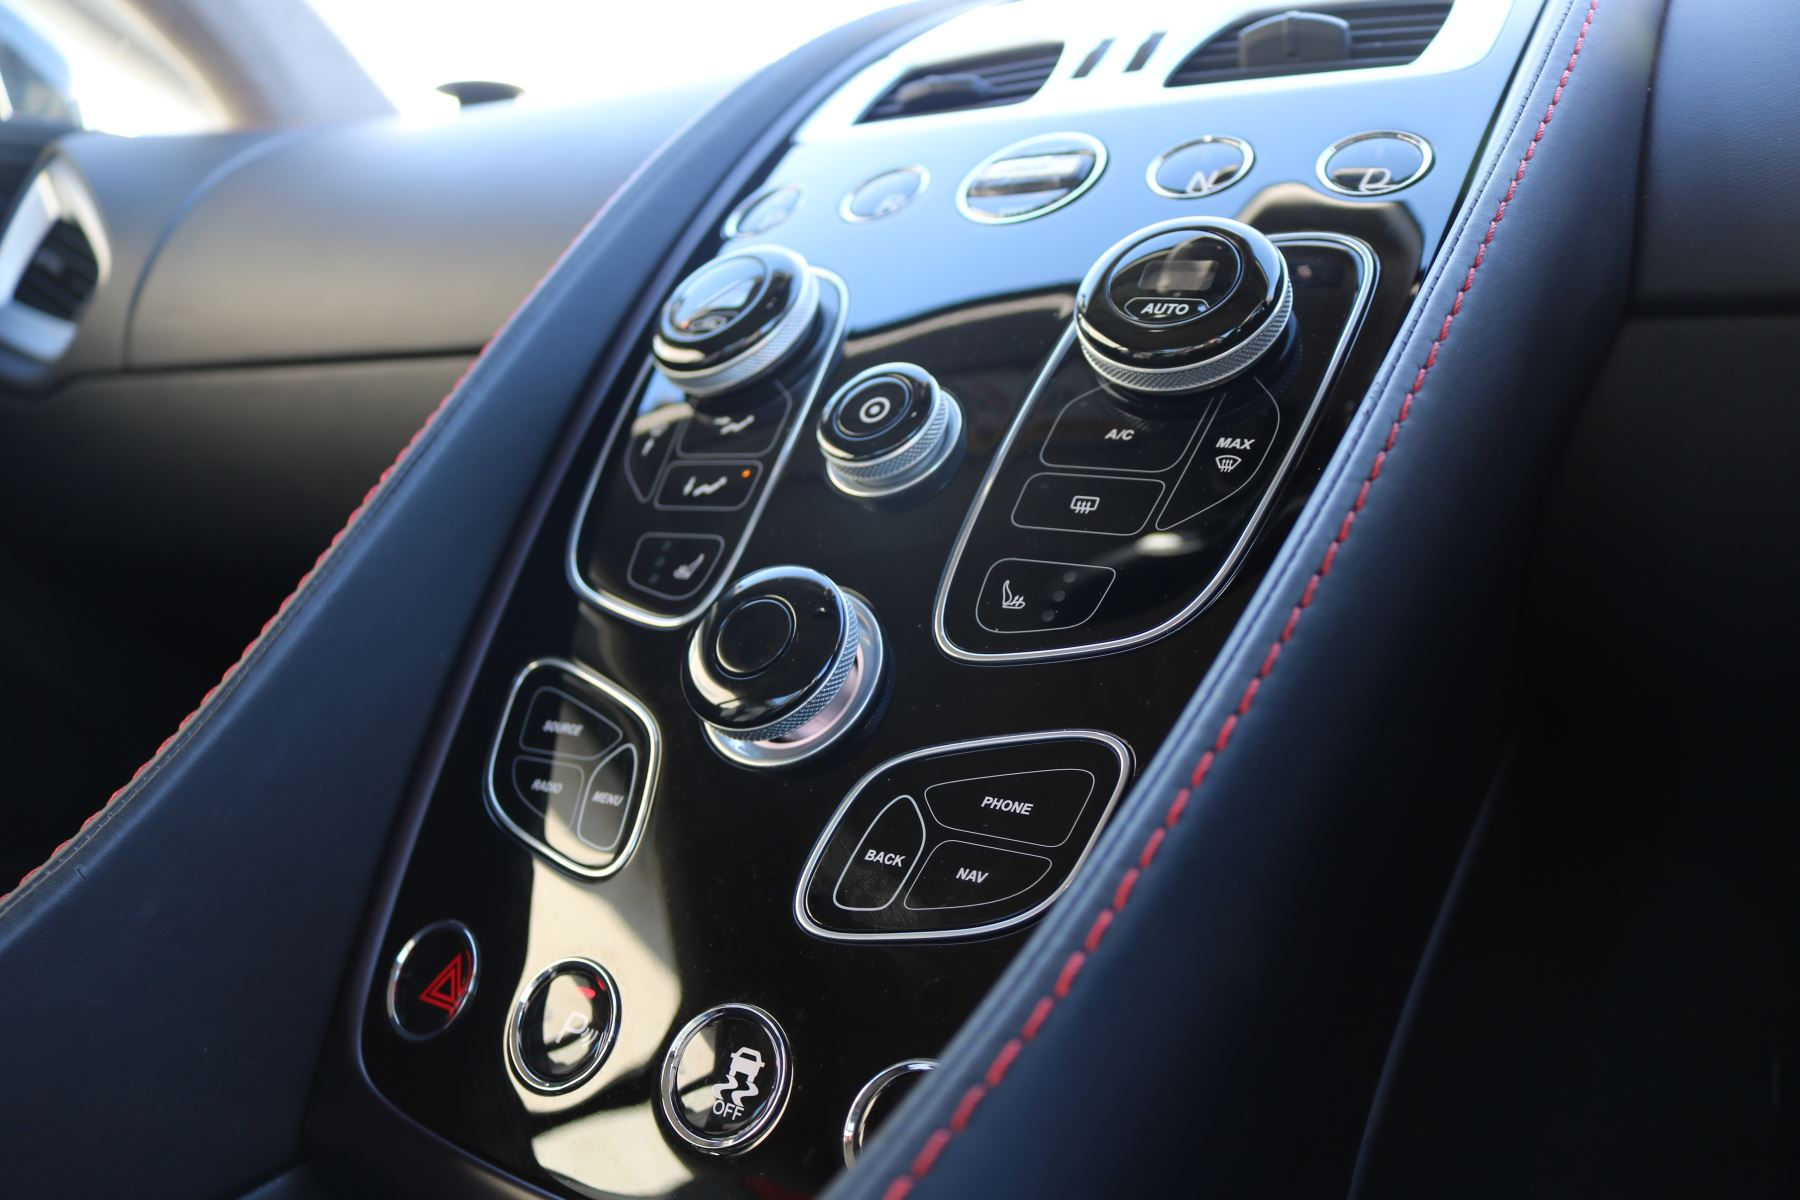 Aston Martin Vanquish V12 [568] 2+2 2dr Touchtronic 8 speed Carbon 17 Model Year Apple Car Play  image 7